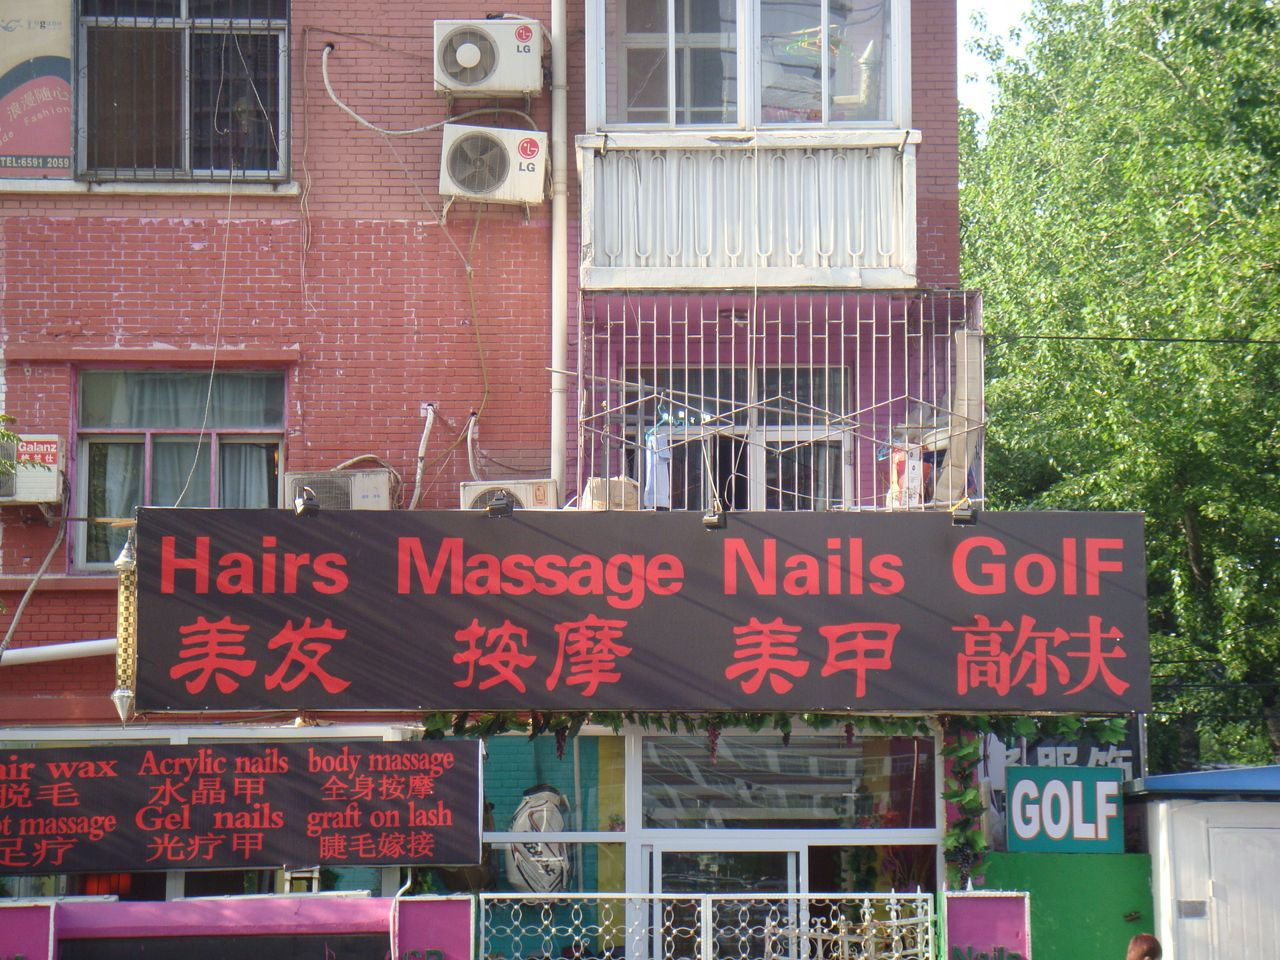 Chinese hair salon sign translated